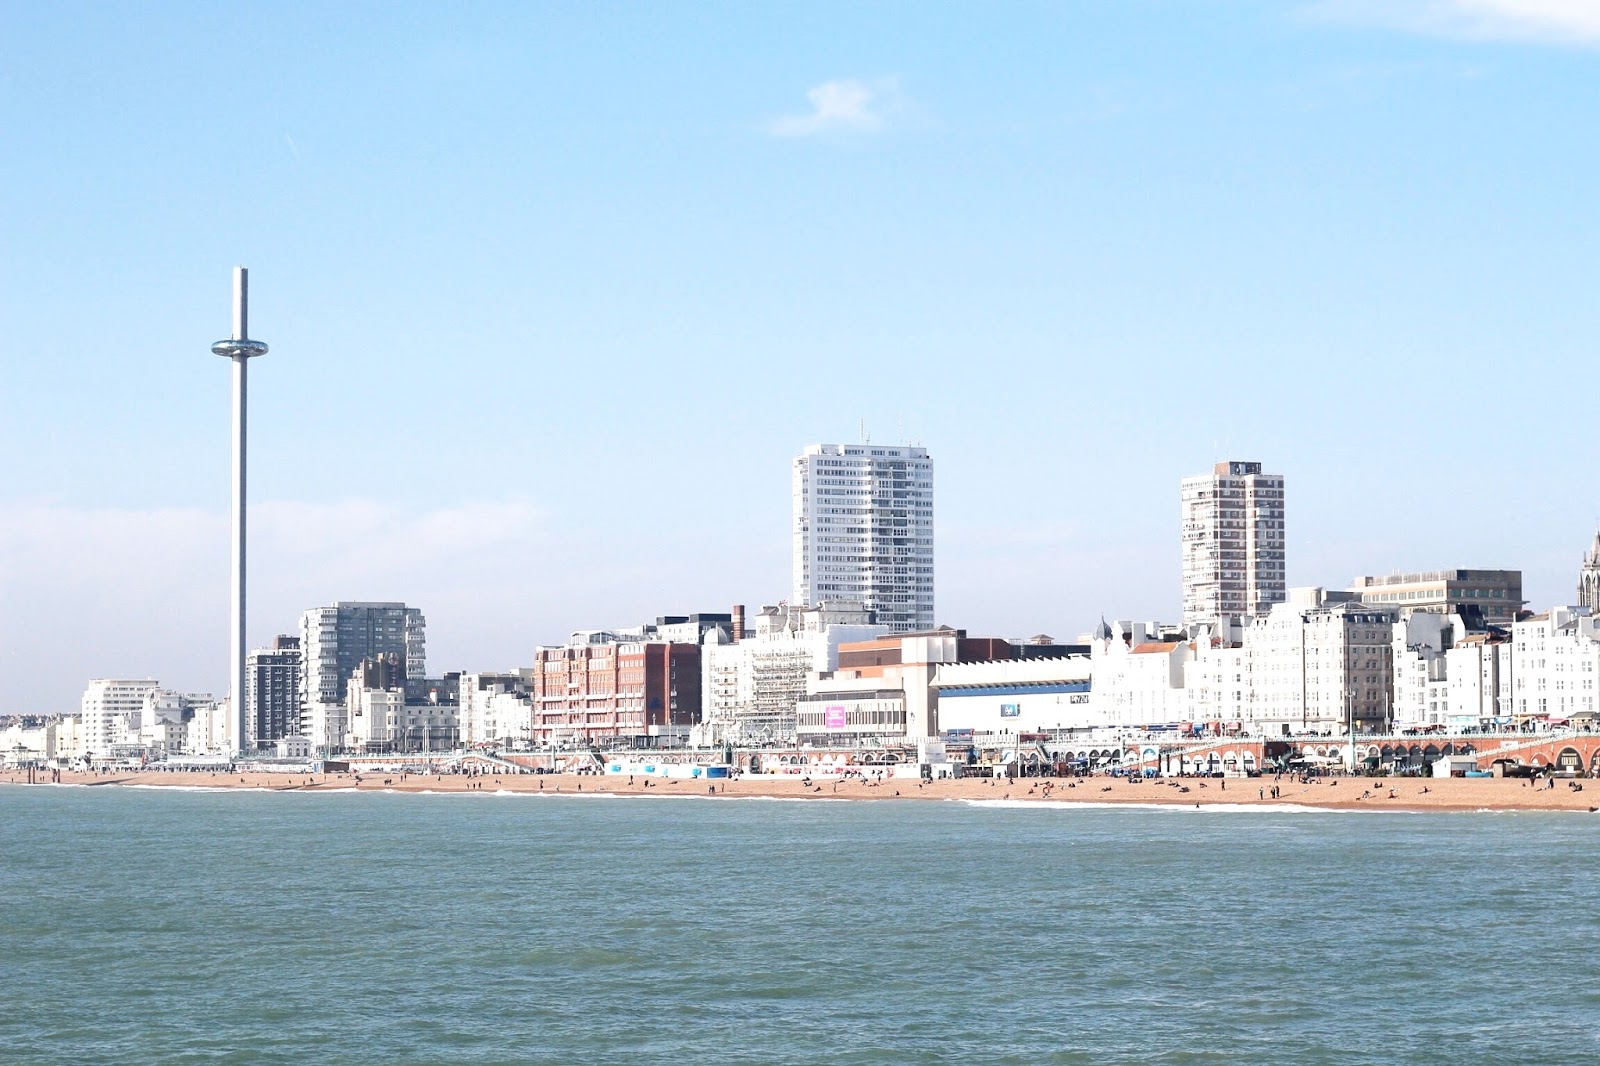 Brighton Seaside Landscape in the Sunshine